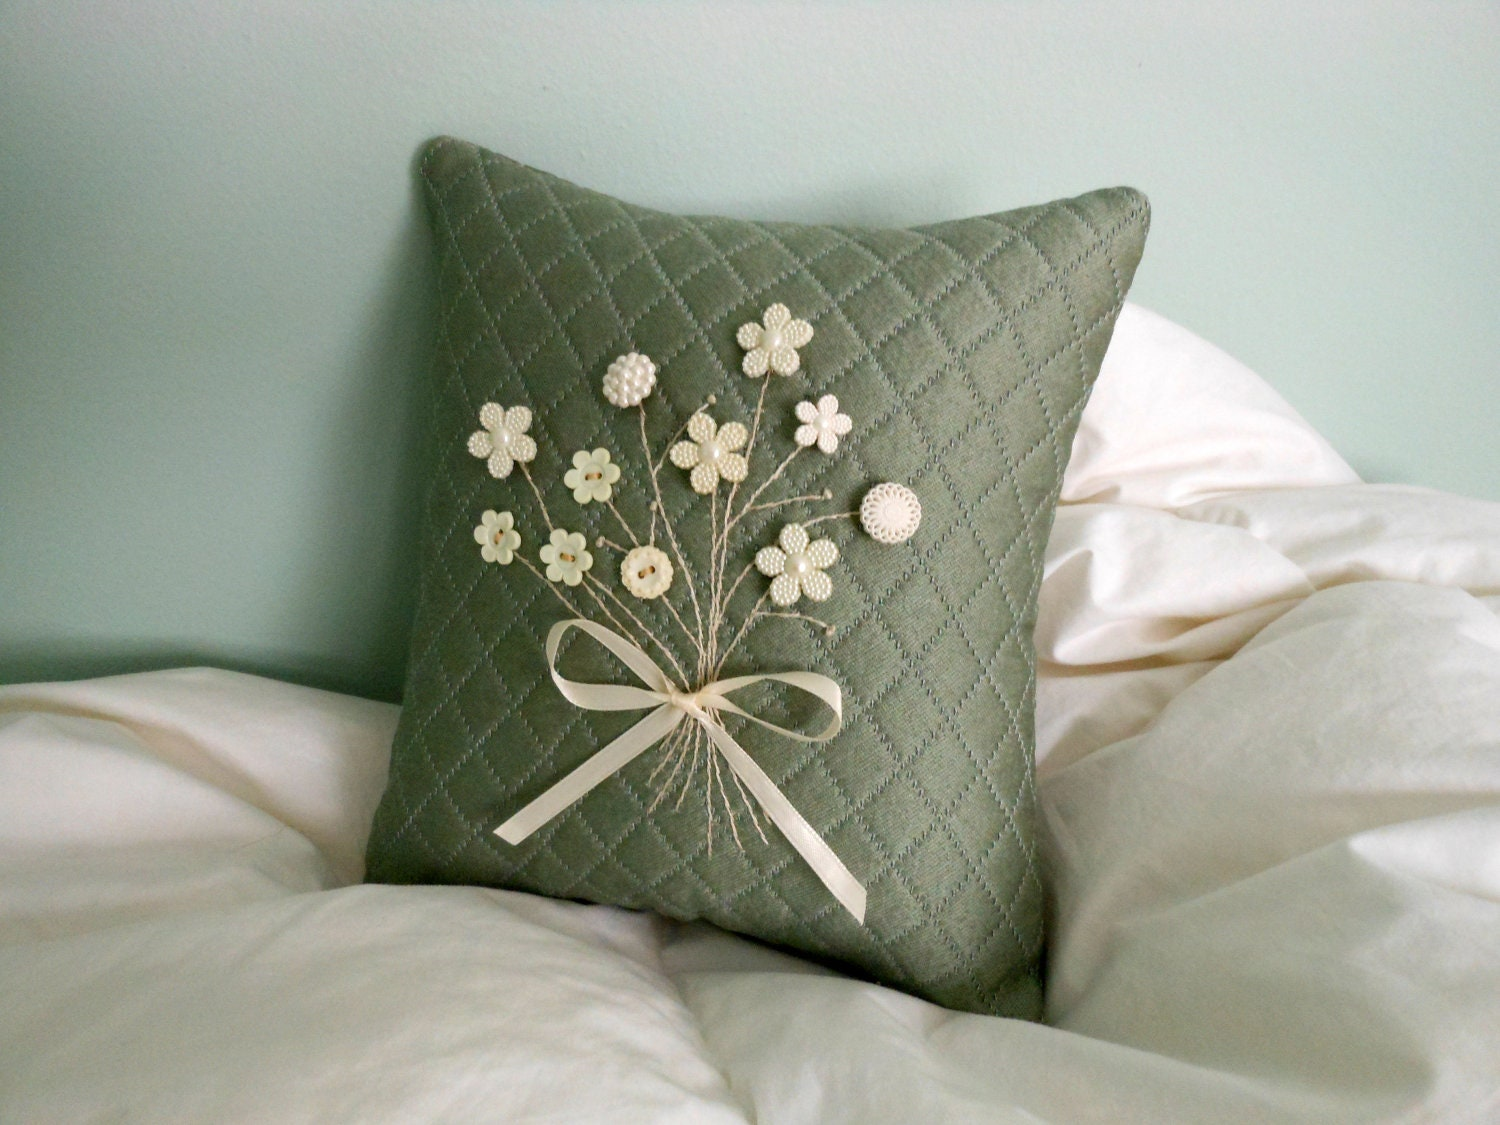 White Quilted Decorative Pillows : Decorative Pillow Quilted Gray Pillow with White and Cream